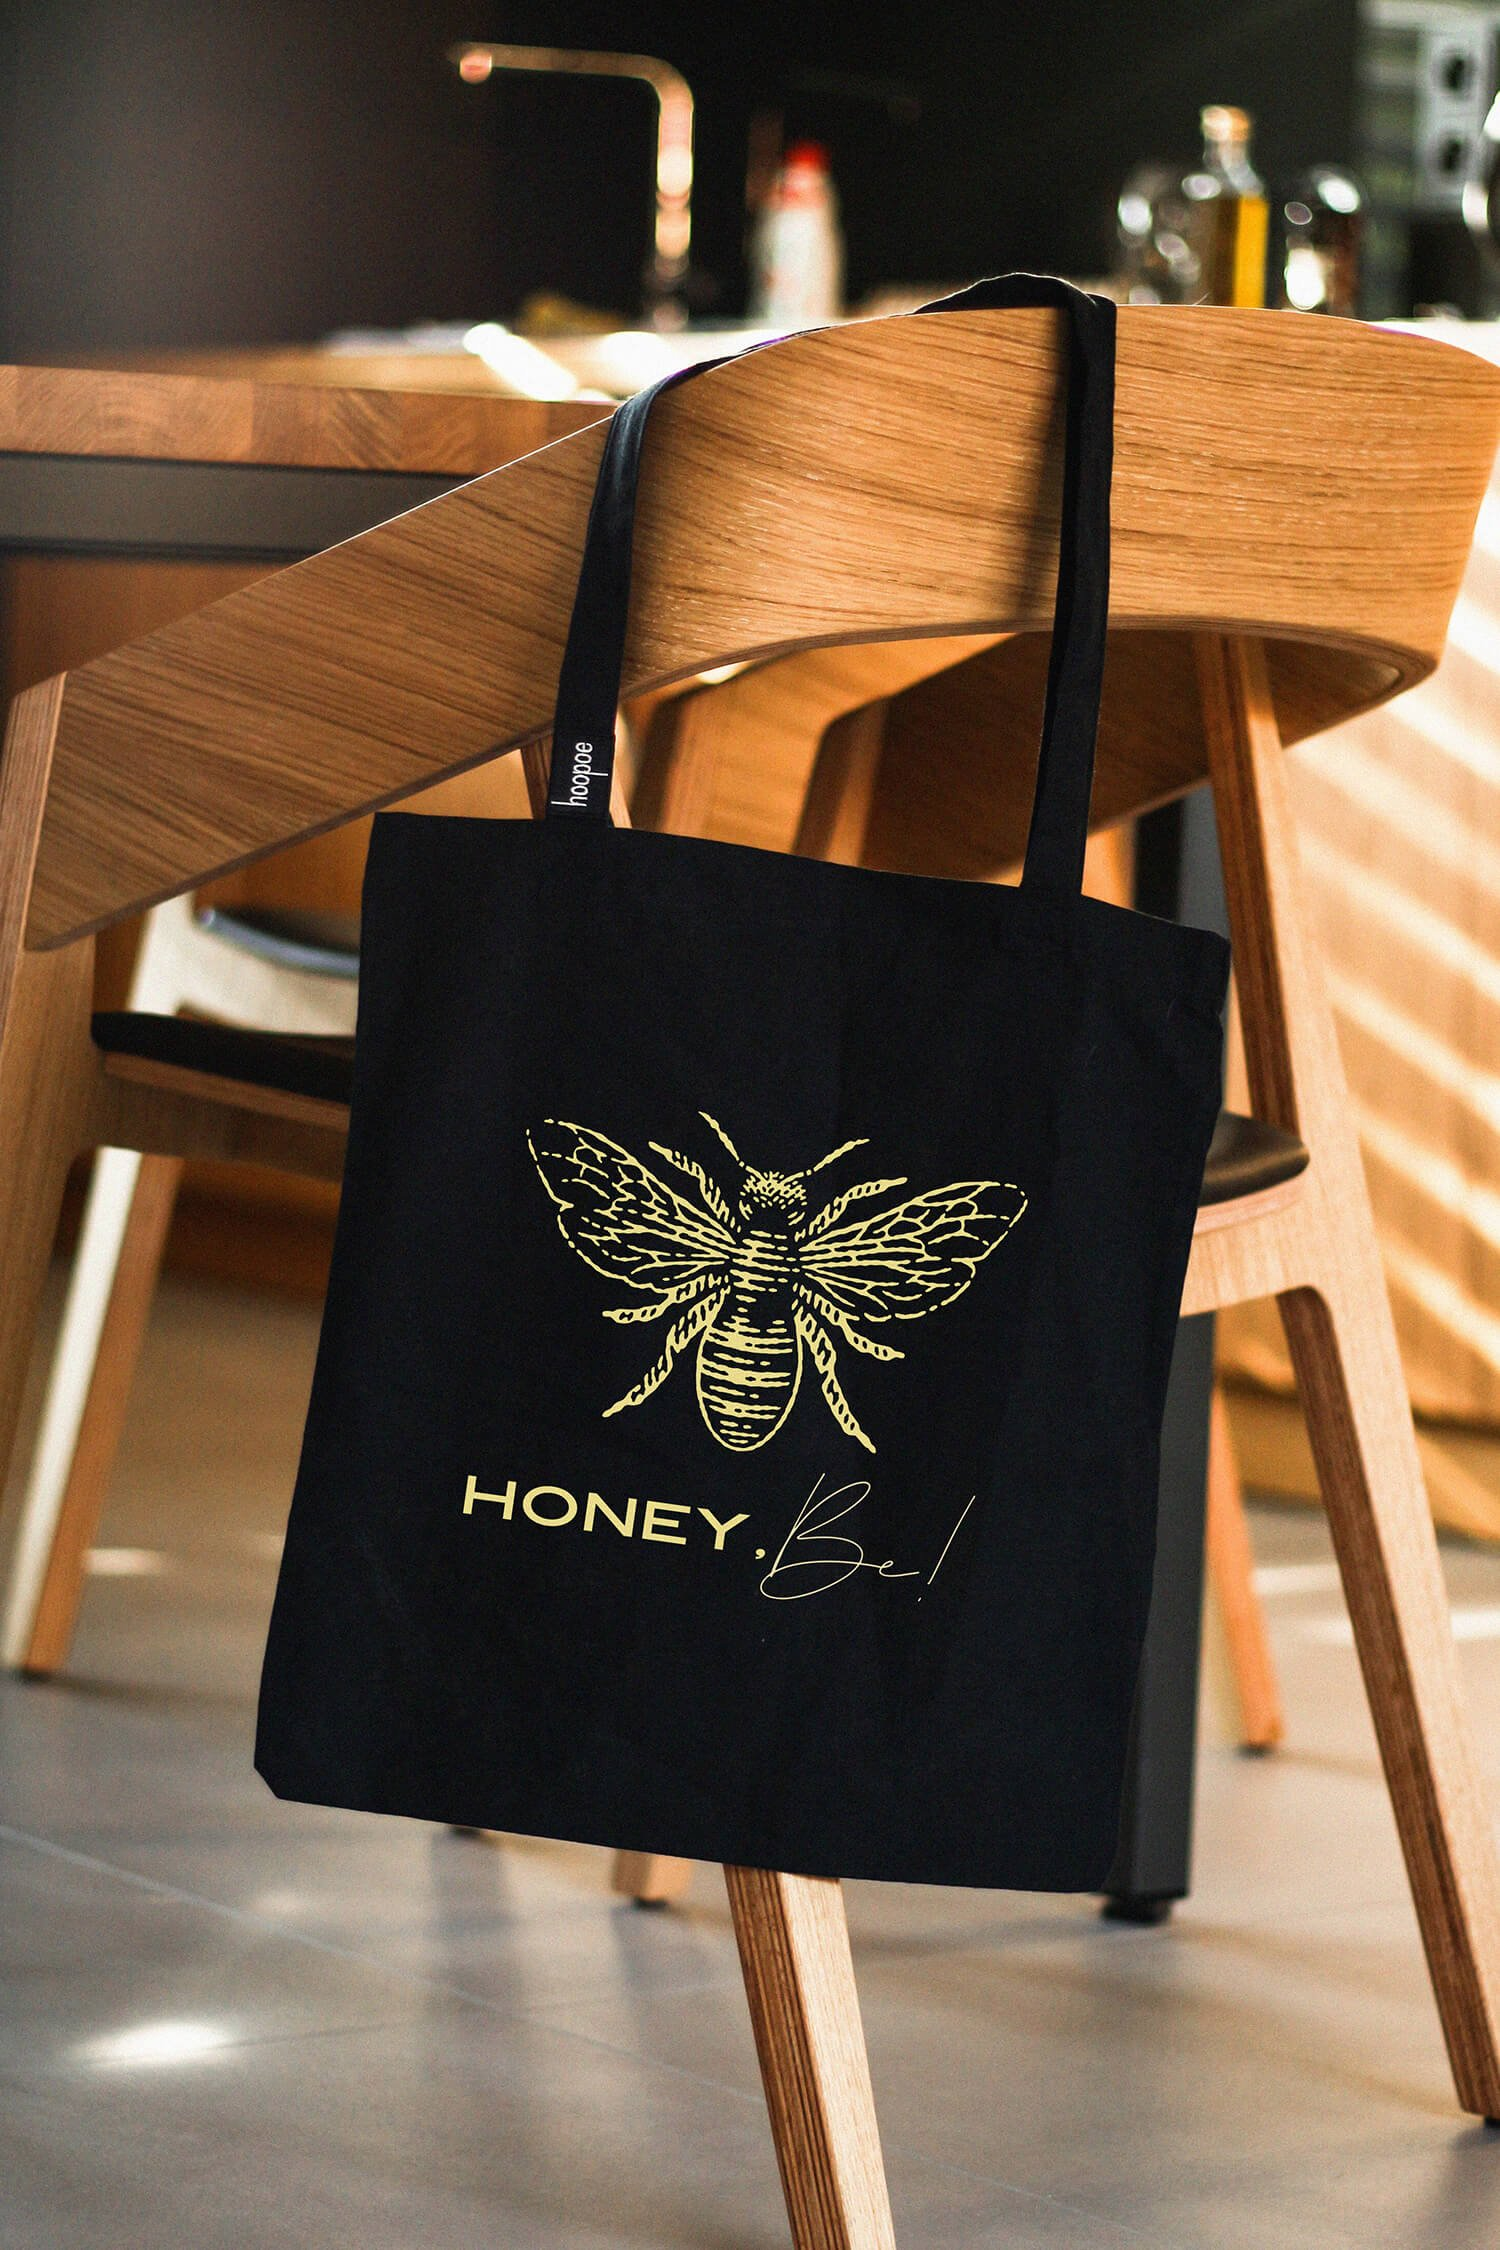 Honey, Be! Selfcare event | Fiona Gobbo Creative | Branded event gift